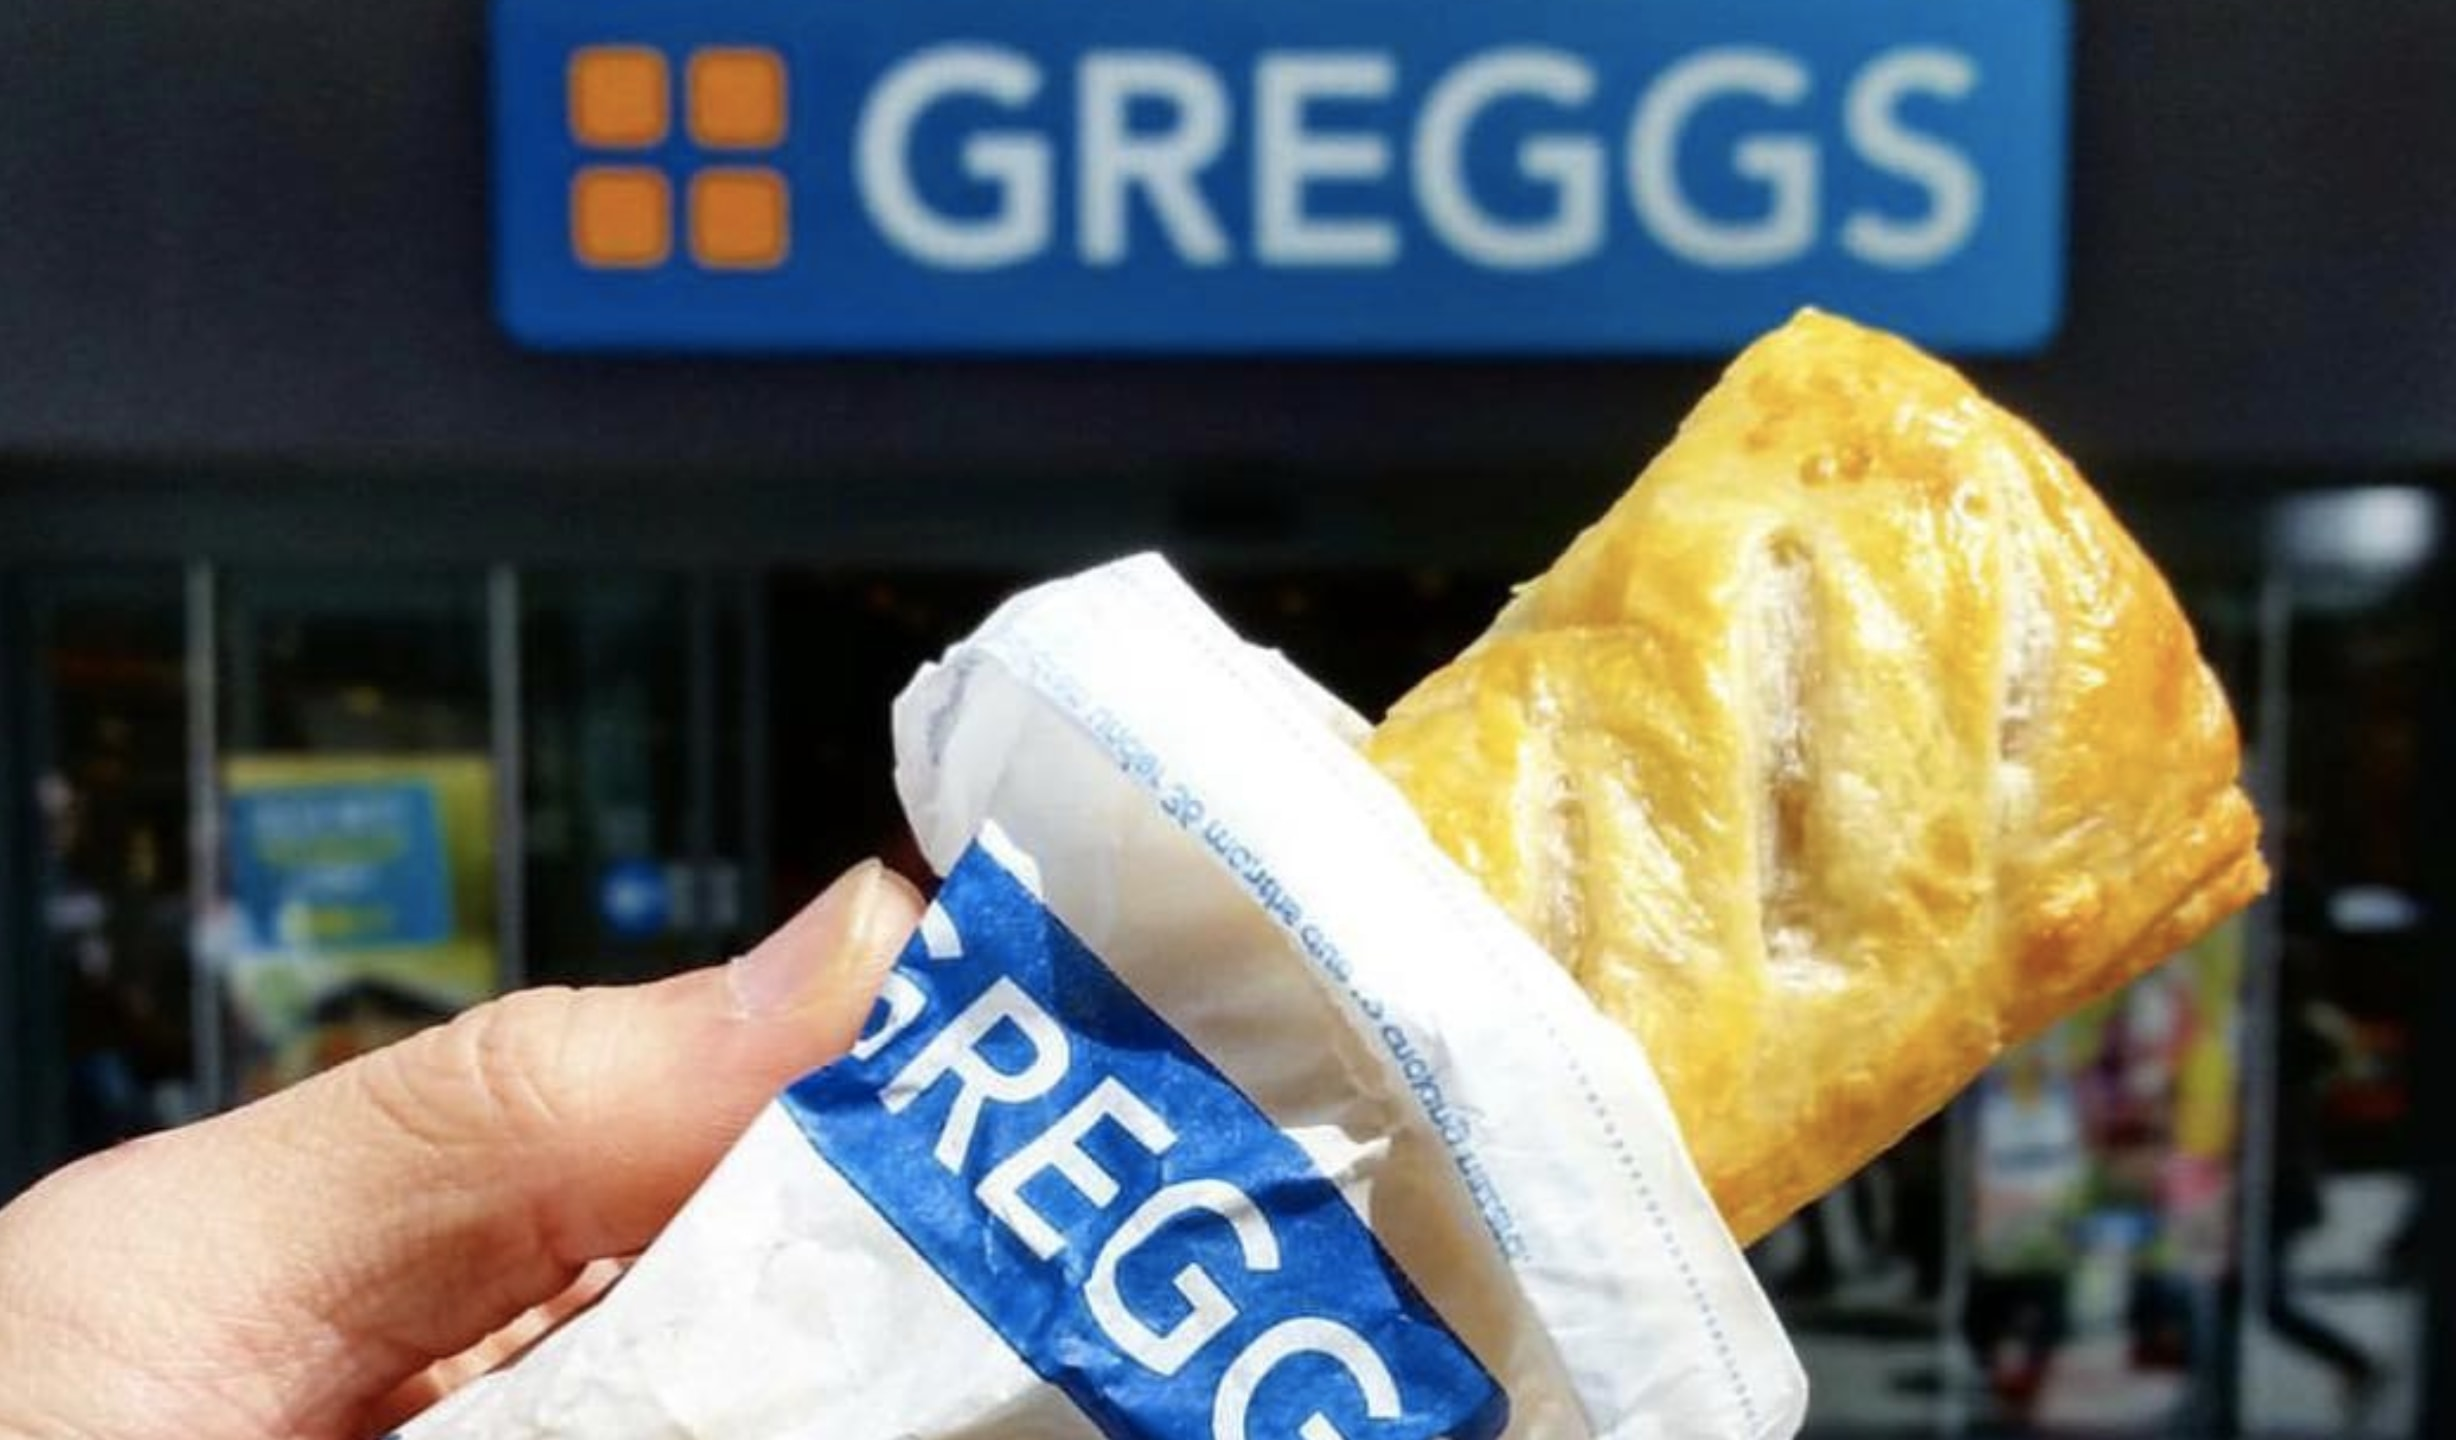 Sausage roll from UK chain bakery Greggs